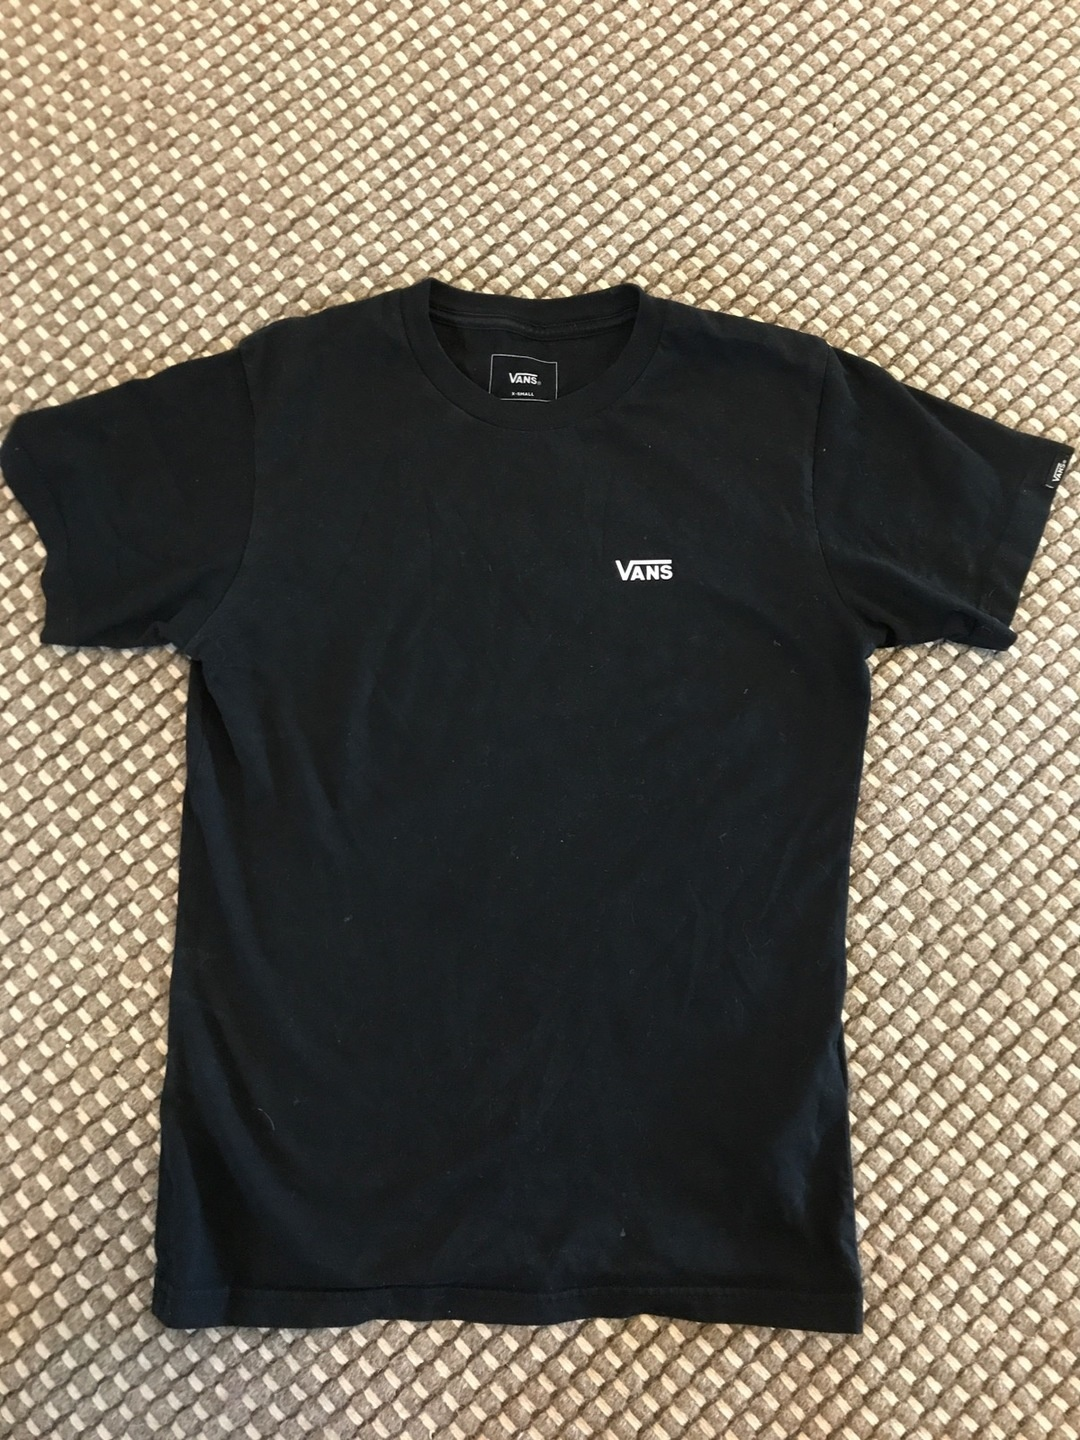 Damers toppe og t-shirts - VANS photo 1